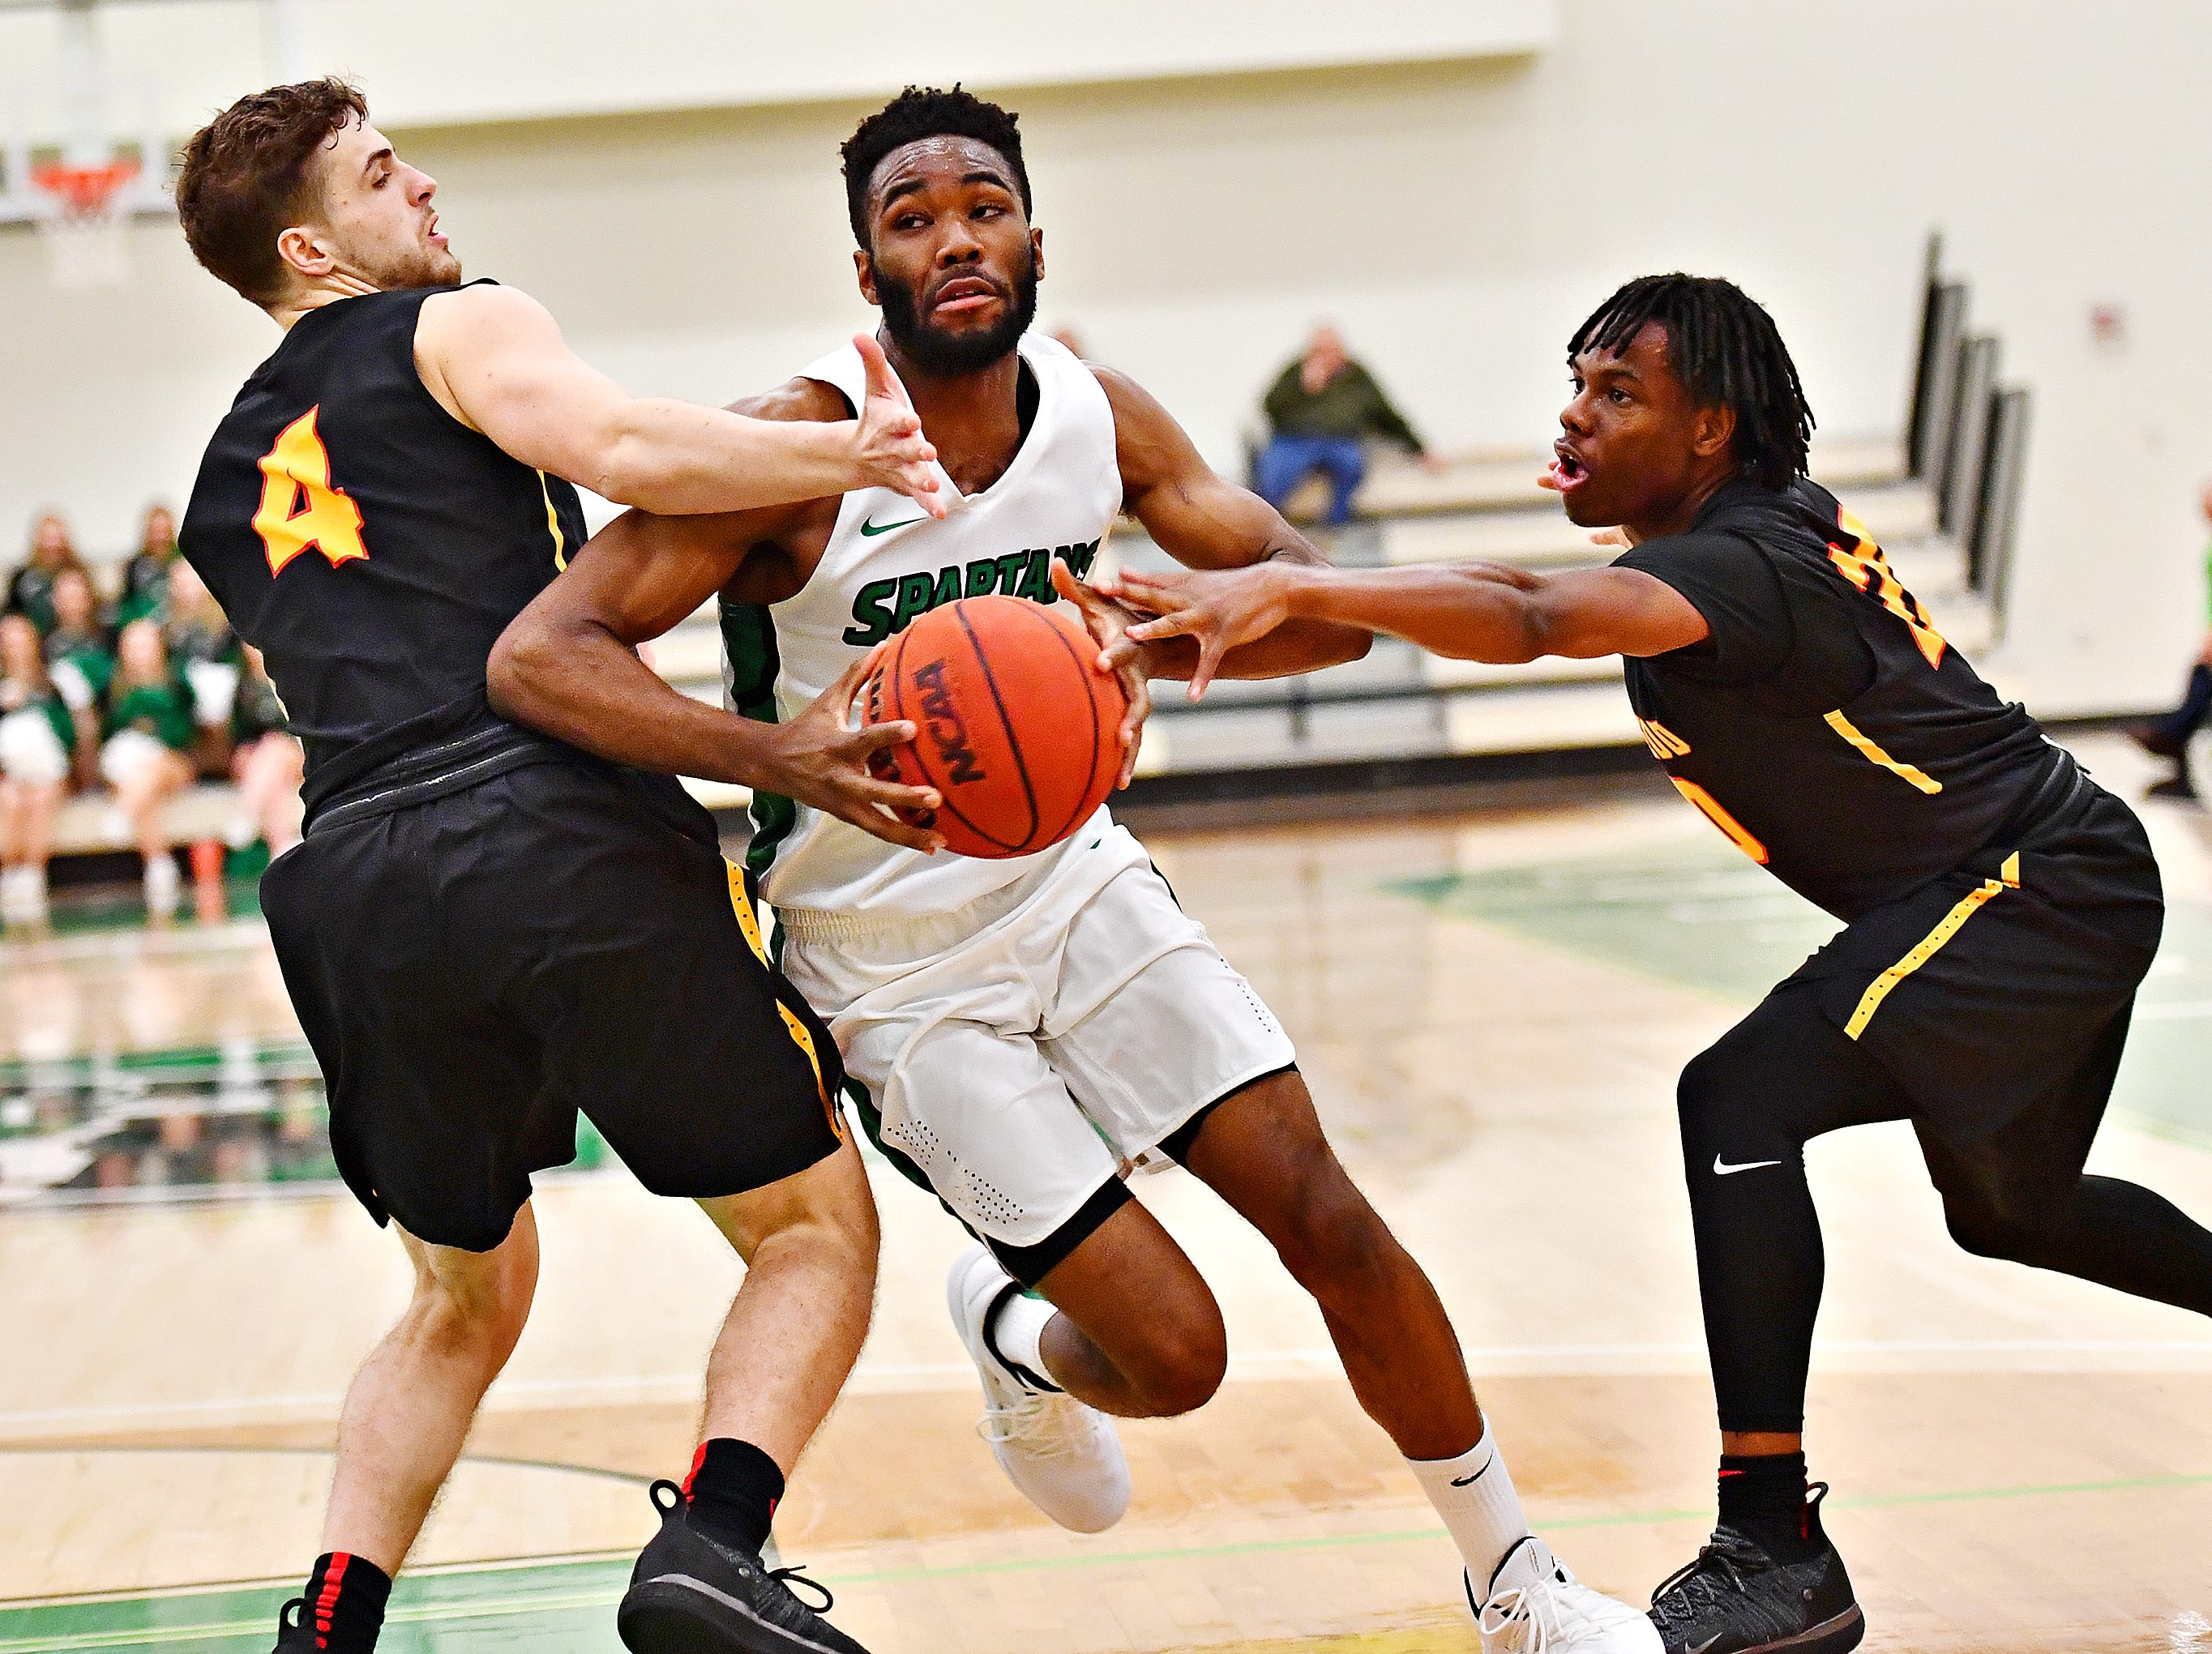 York College's Jason Bady, center, gets past Gwynedd-Mercy's Matt Sommers, left, and Clayton Wolfe during men's basketball action at Grumbacher Sport and Fitness Center in Spring Garden Township, Wednesday, Nov. 28, 2018. Dawn J. Sagert photo